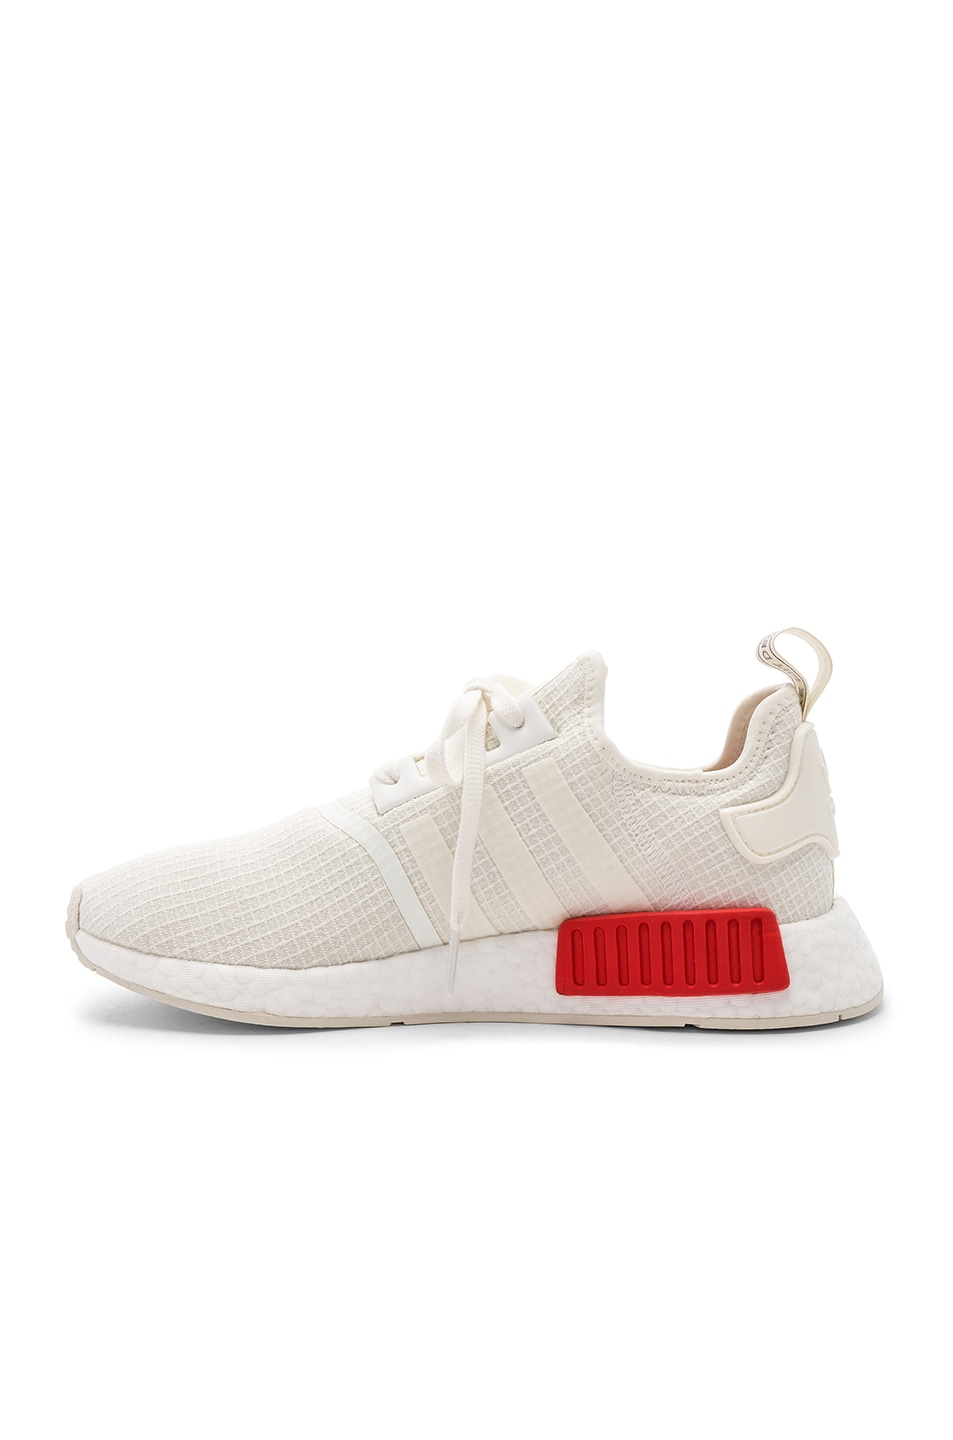 Image 5 of adidas Originals NMD R1 in Off White & Off White & Lush Red